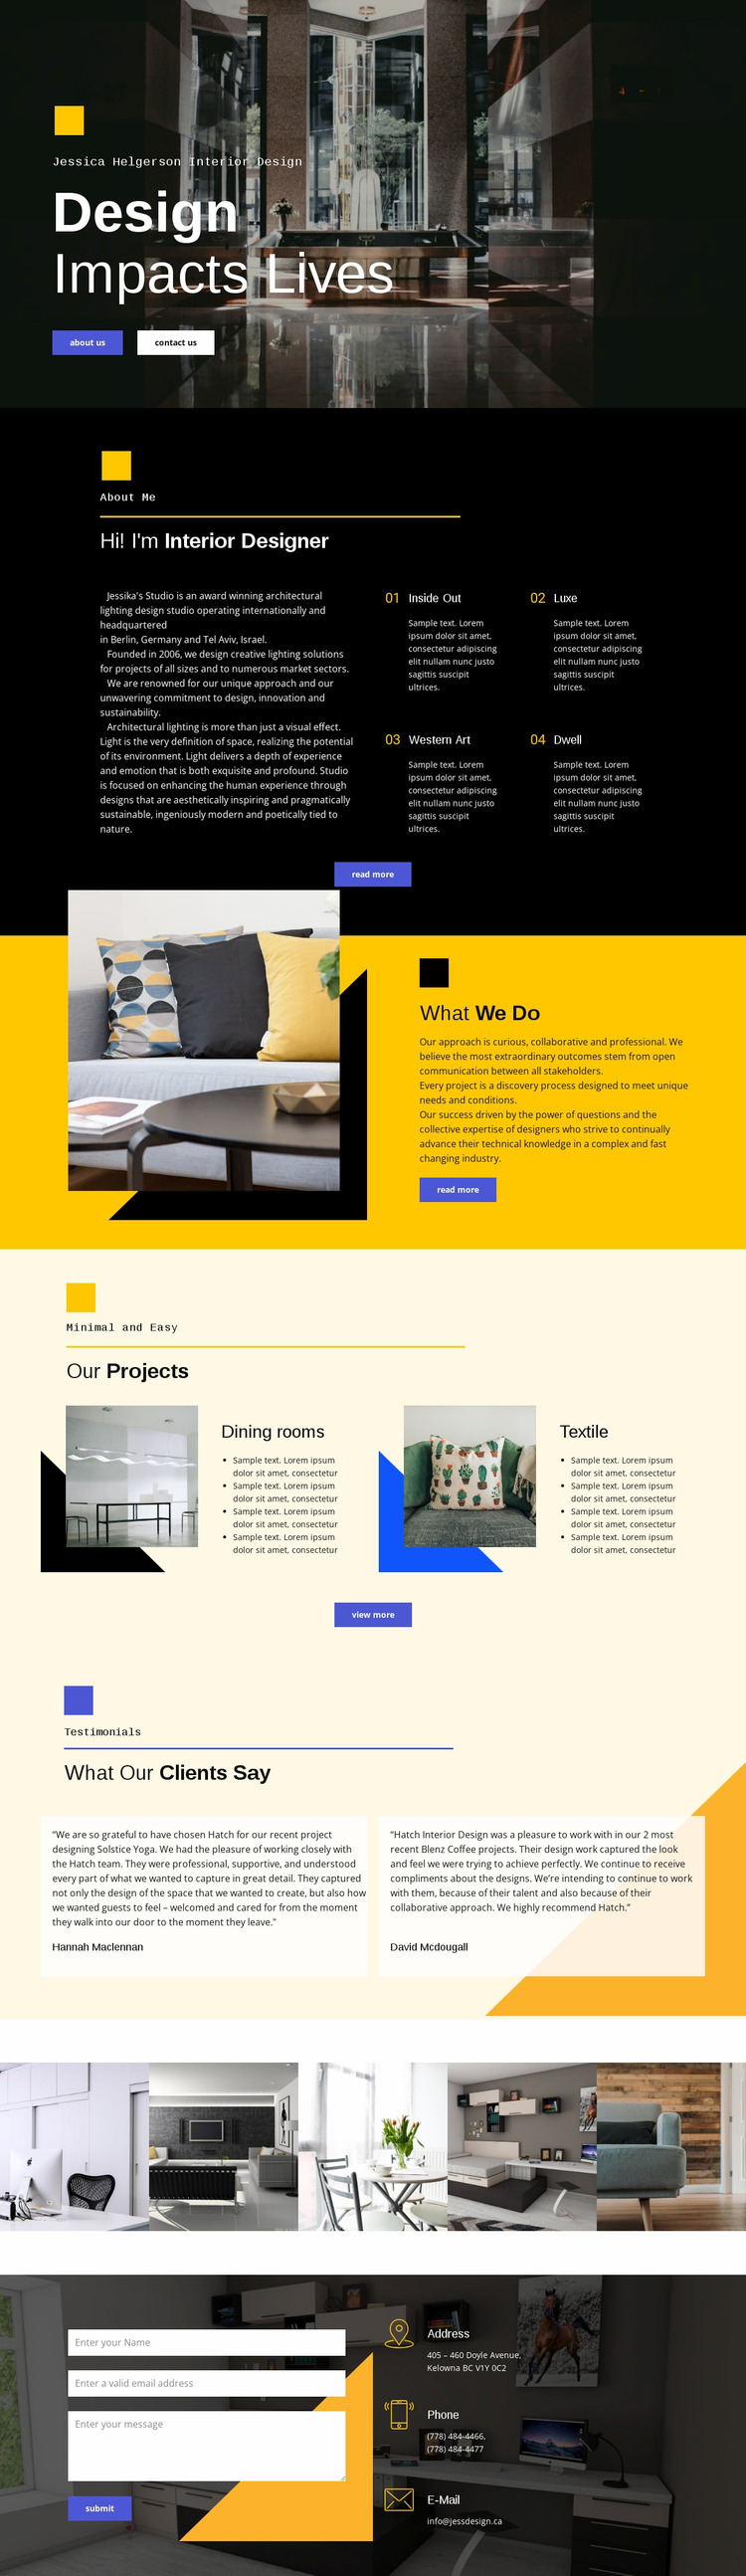 Design Studio WordPress Website Builder